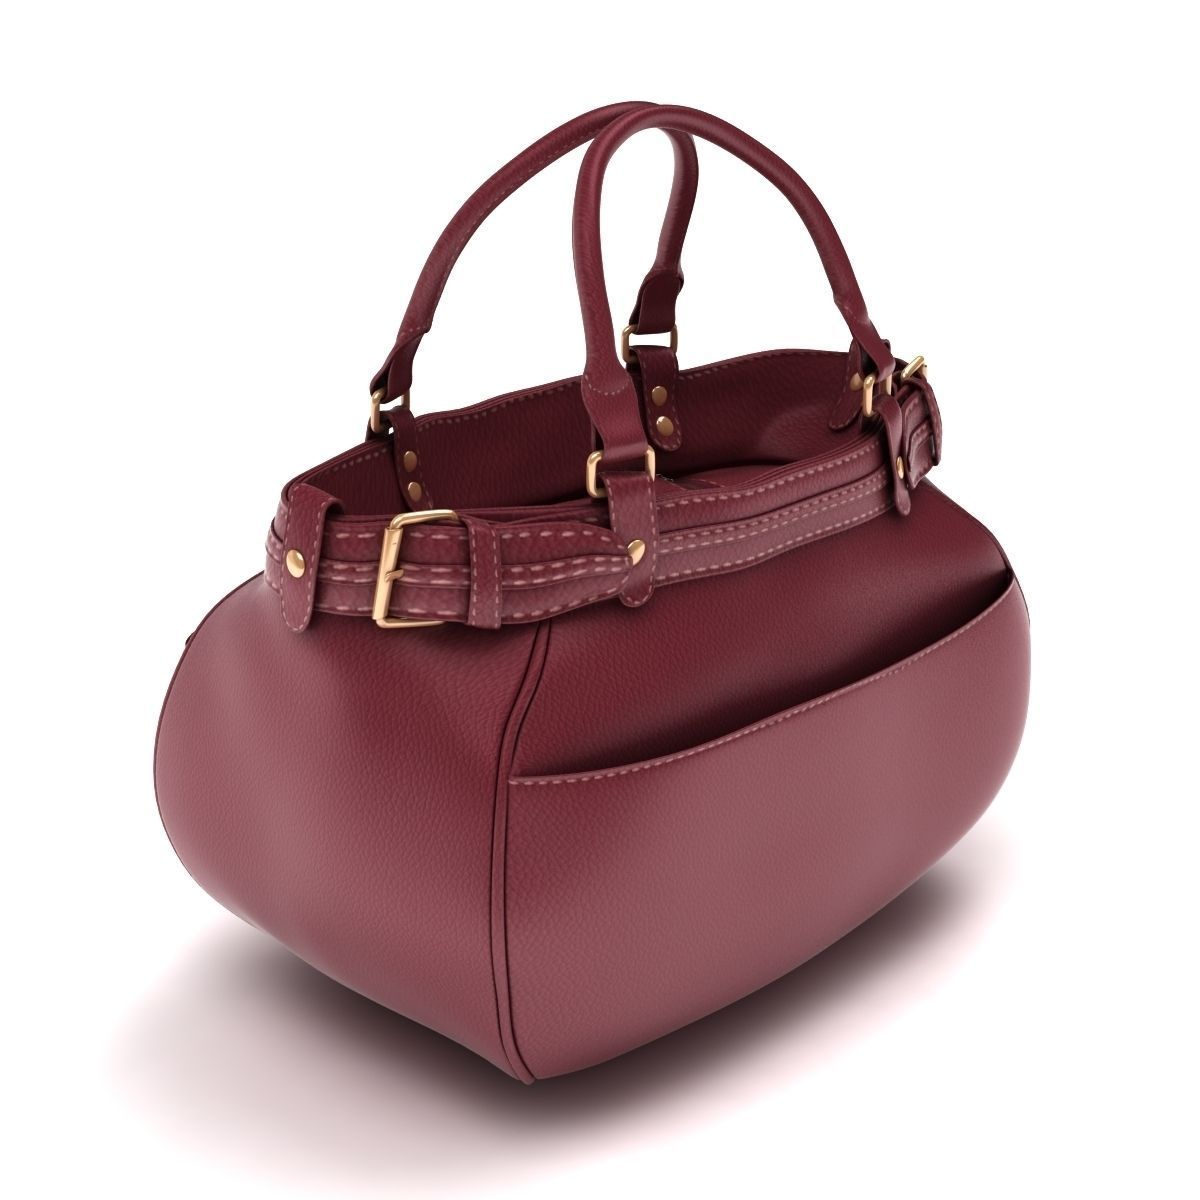 44b2399bd6 ... ladies hand bag 03 3d model max obj mtl 3ds fbx c4d lwo lw lws 2 ...